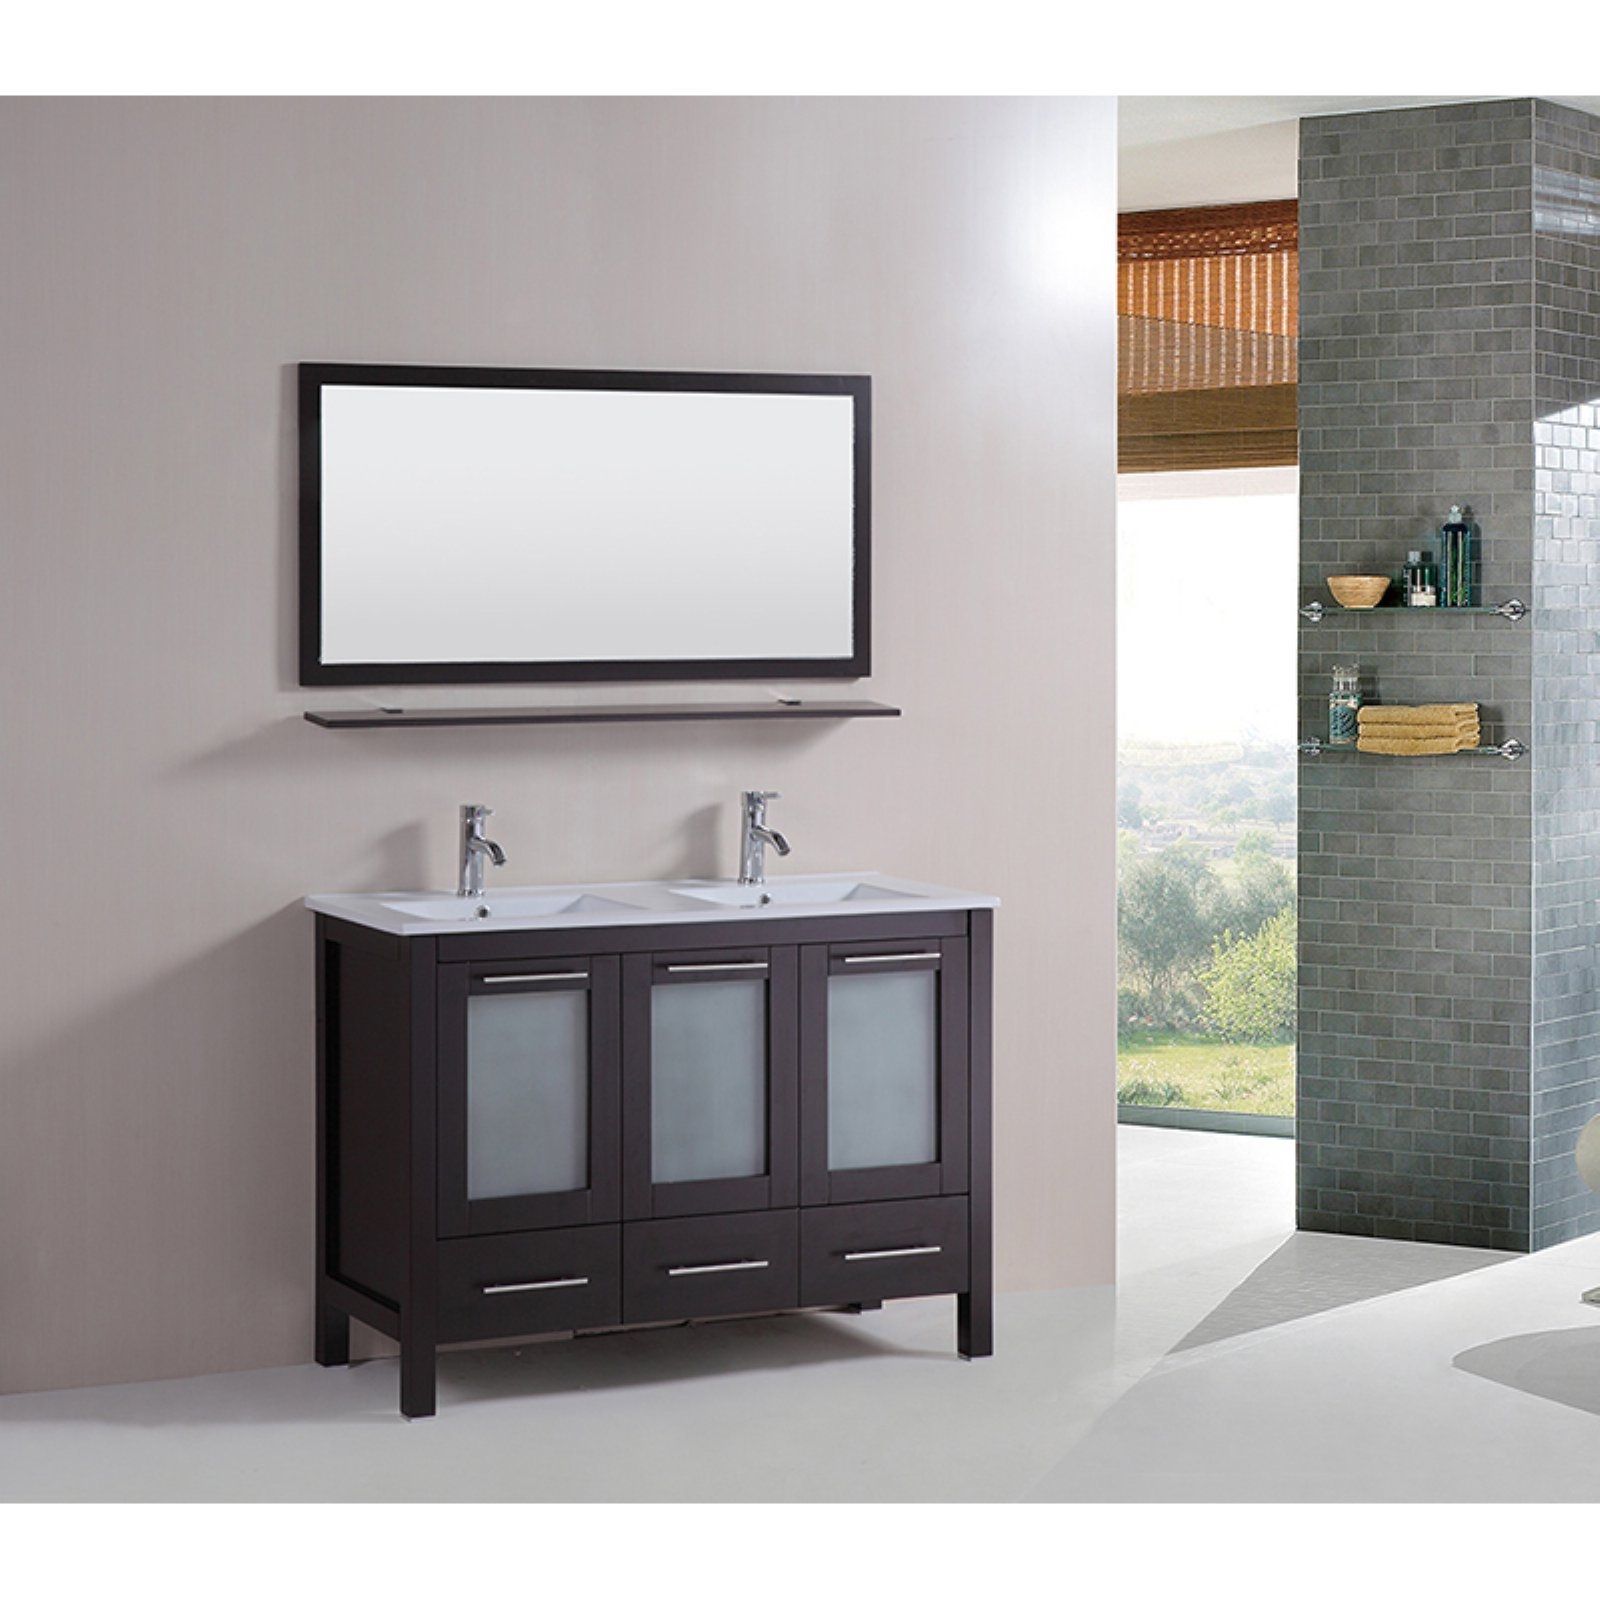 Kokols Sabrael 48 in. Double Bathroom Vanity Set